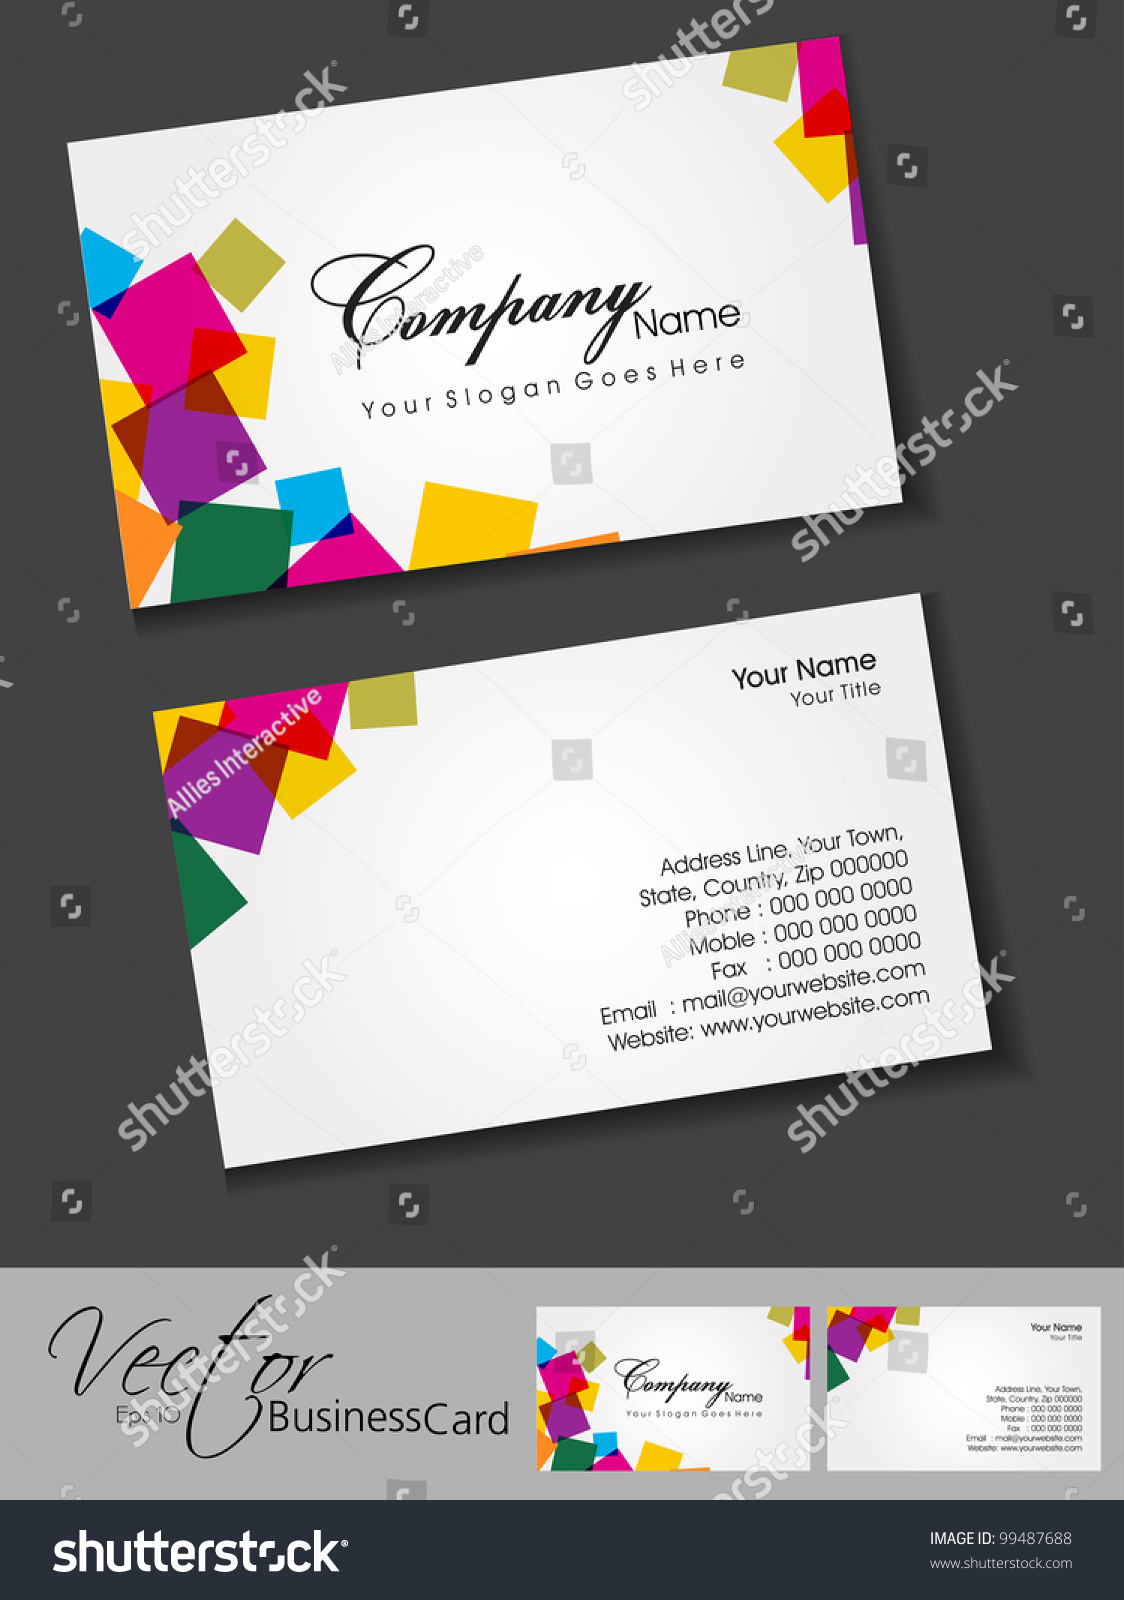 Generous 1 Inch Button Template Thick 1 Week Calendar Template Shaped 1099 Contract Template 1300 Resume Government Samples Selection Criteria Youthful 185 Powerful Resume Verbs Red1st Job Resume Template Abstract Colorful Bright Color Professional Designer Stock Vector ..